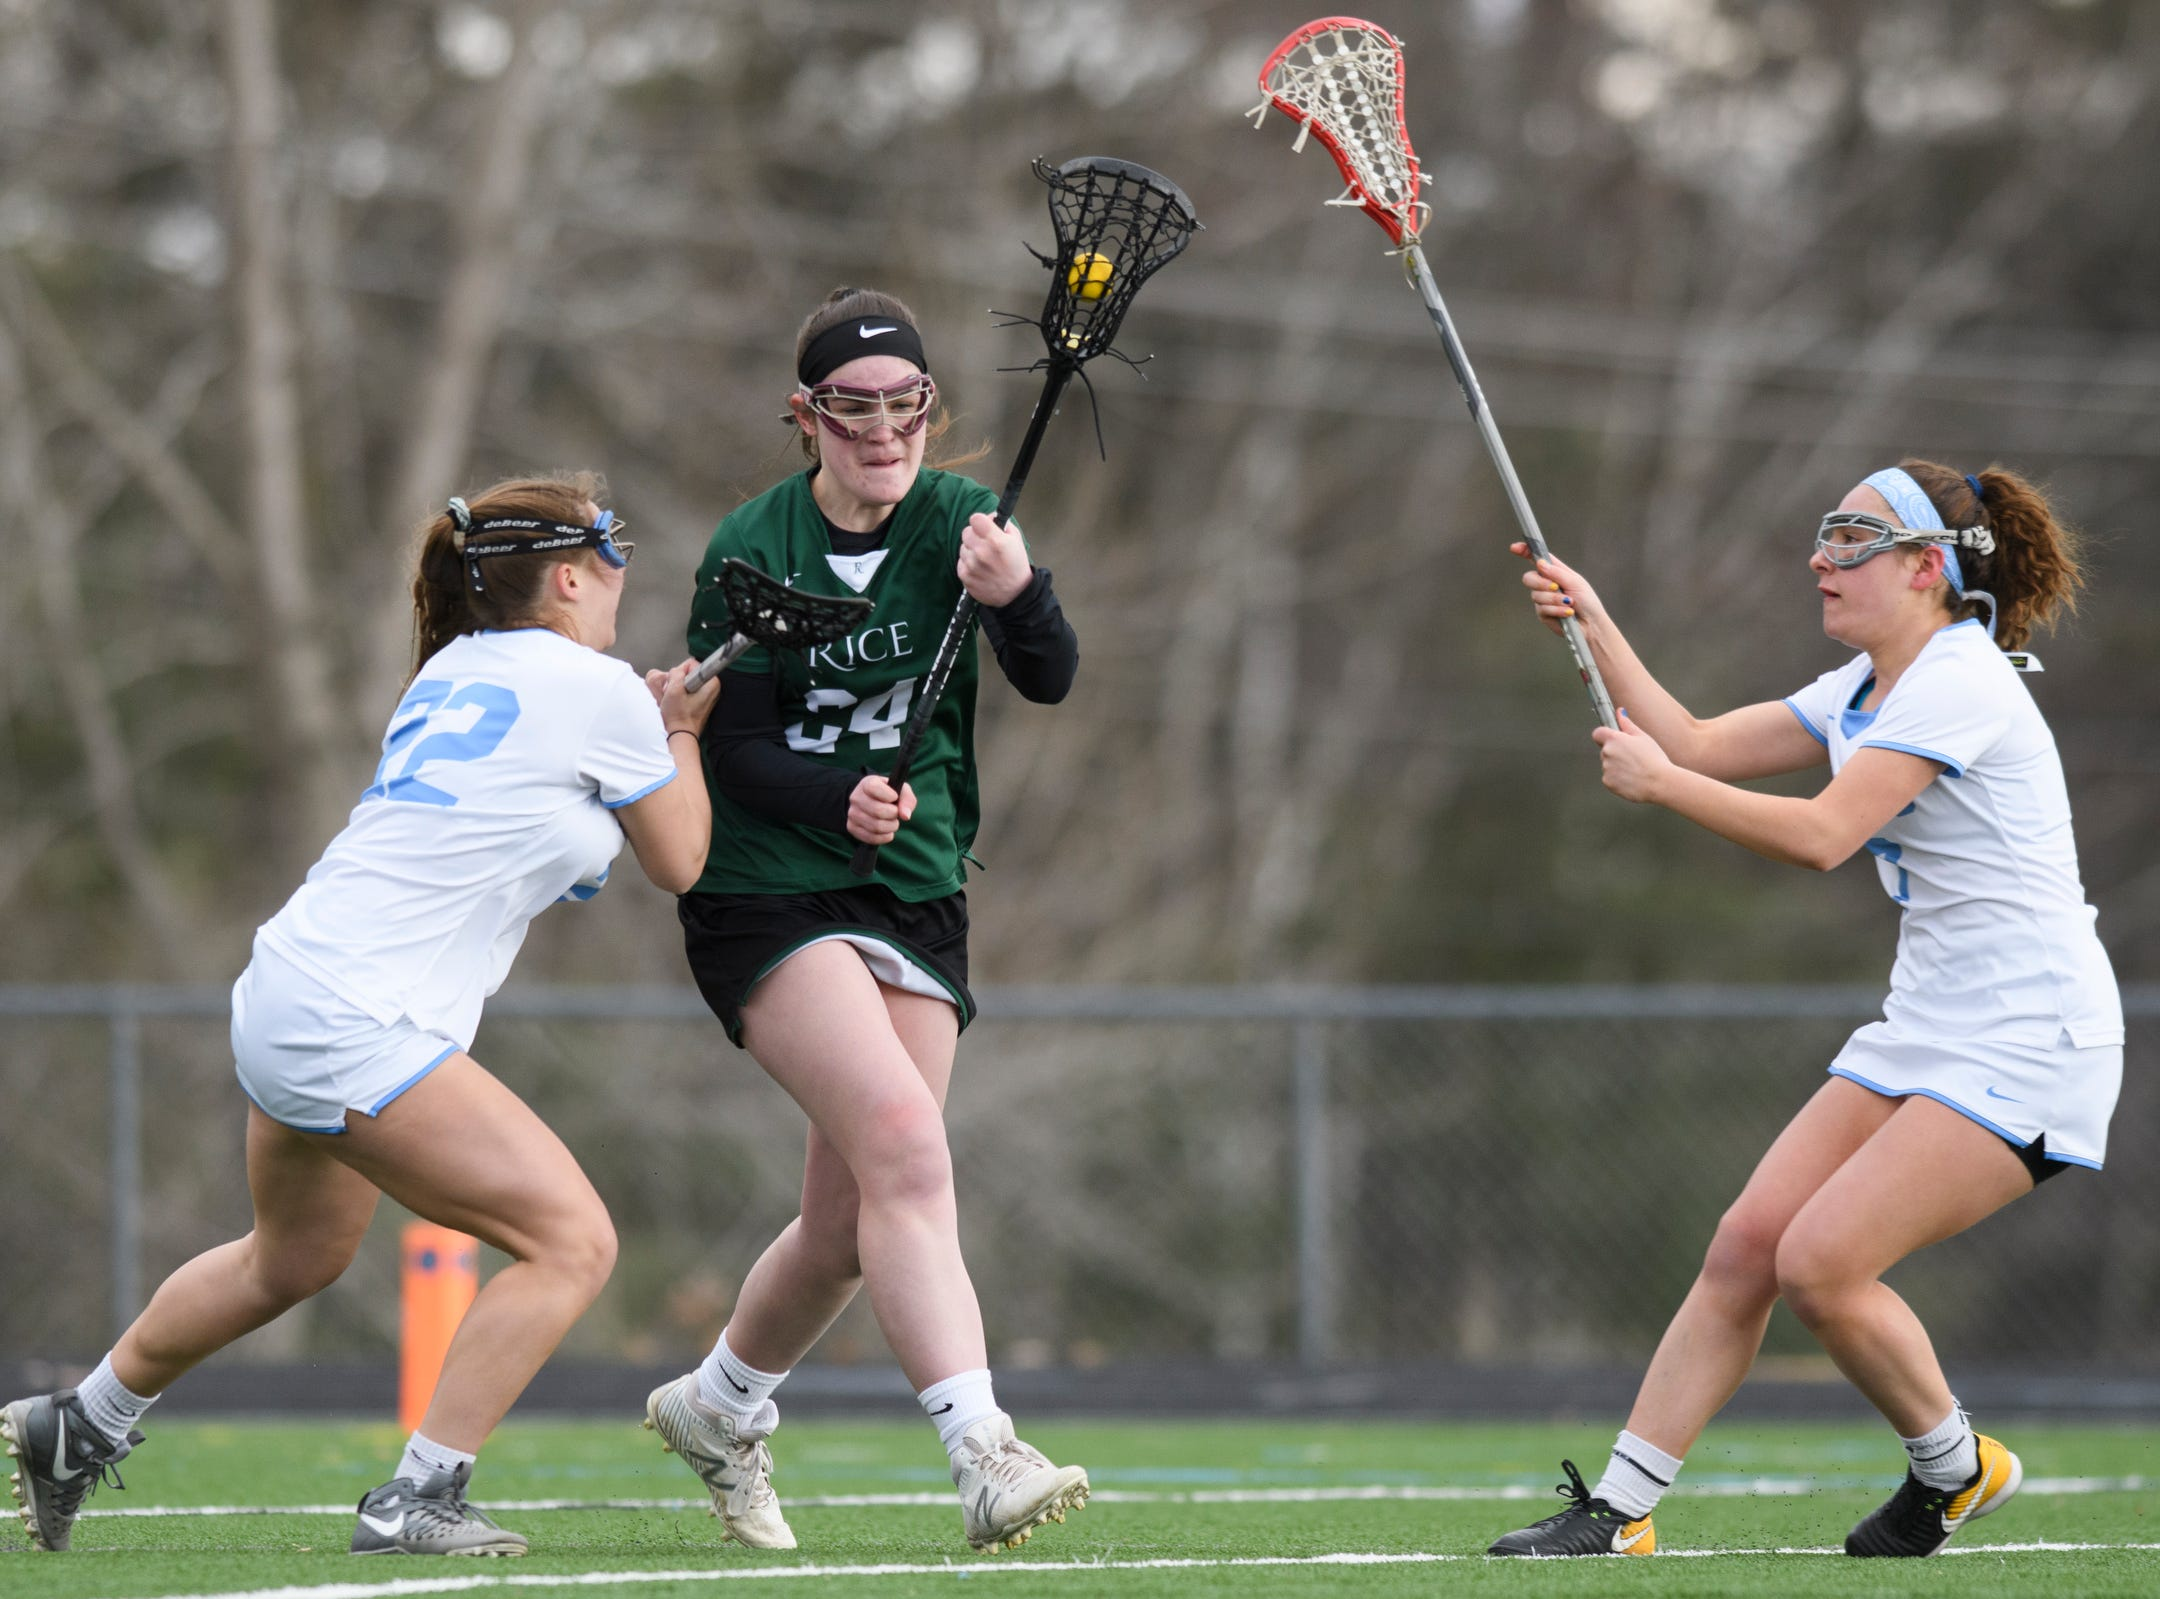 Rice's Annika Hanson (24) runs between South Burlington's Sabrina Redzic (22) and Caroline Desautels (13) during the girls lacrosse game between the Rice Green Knights and the South Burlington Wolves at South Burlington High School on Tuesday afternoon April 16, 2019 in South Burlington, Vermont.